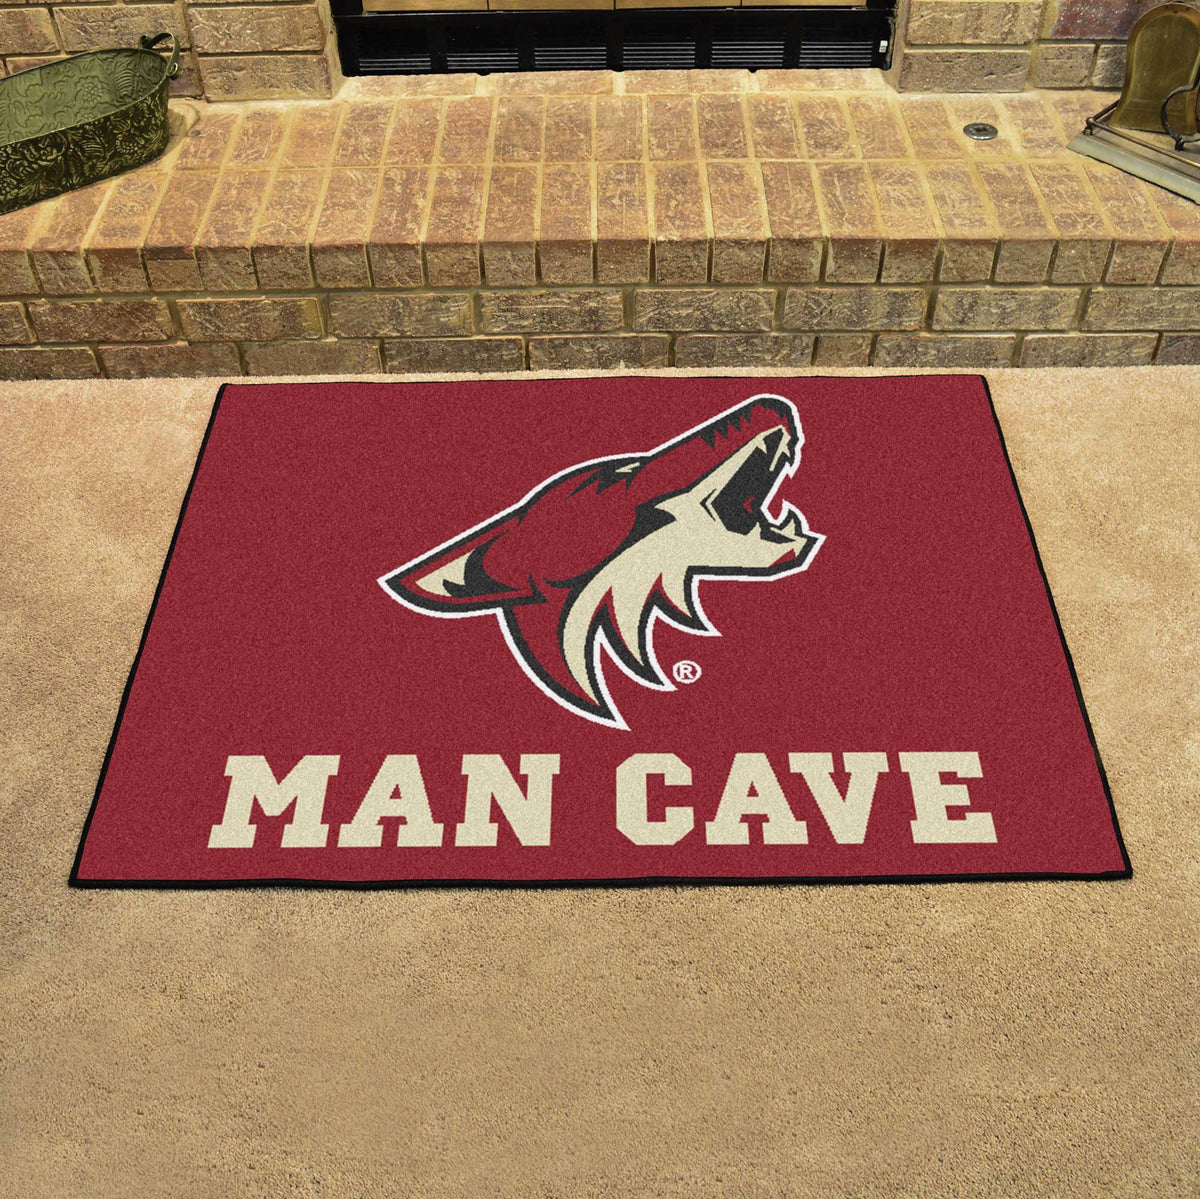 NHL - Man Cave All-Star NHL Mats, Rectangular Mats, Man Cave All-Star Mat, NHL, Home Fan Mats Arizona Coyotes